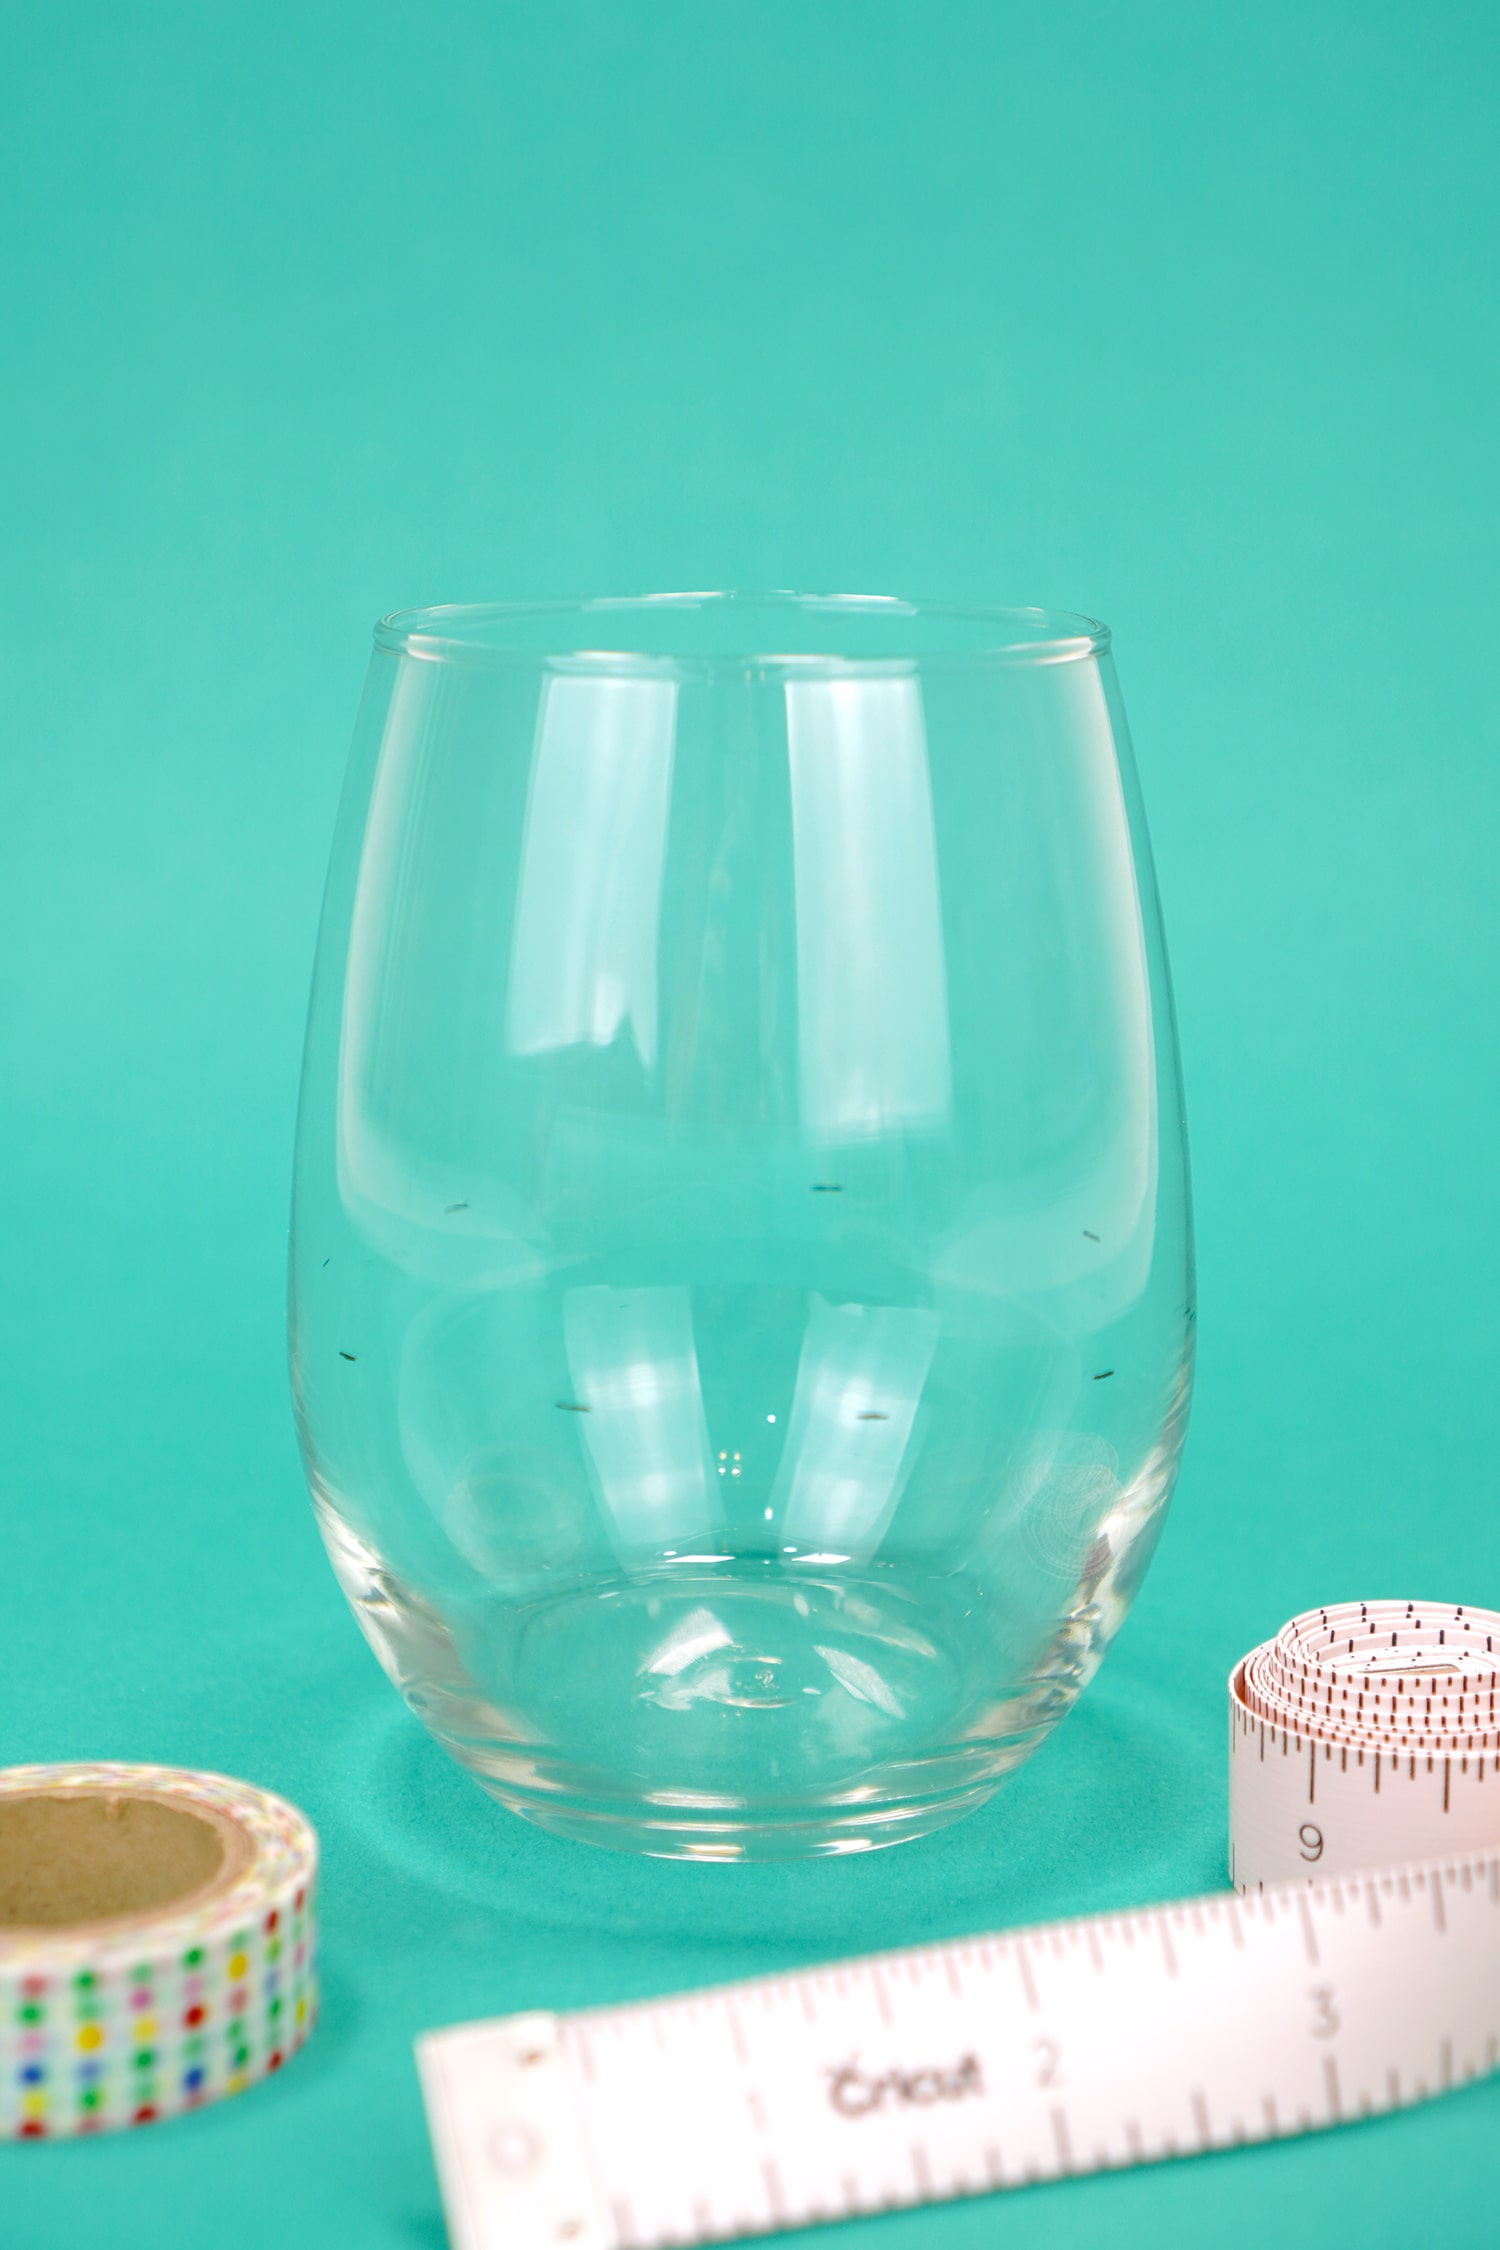 Clear stemless wine glass on teal background with washi tape and soft tape measure